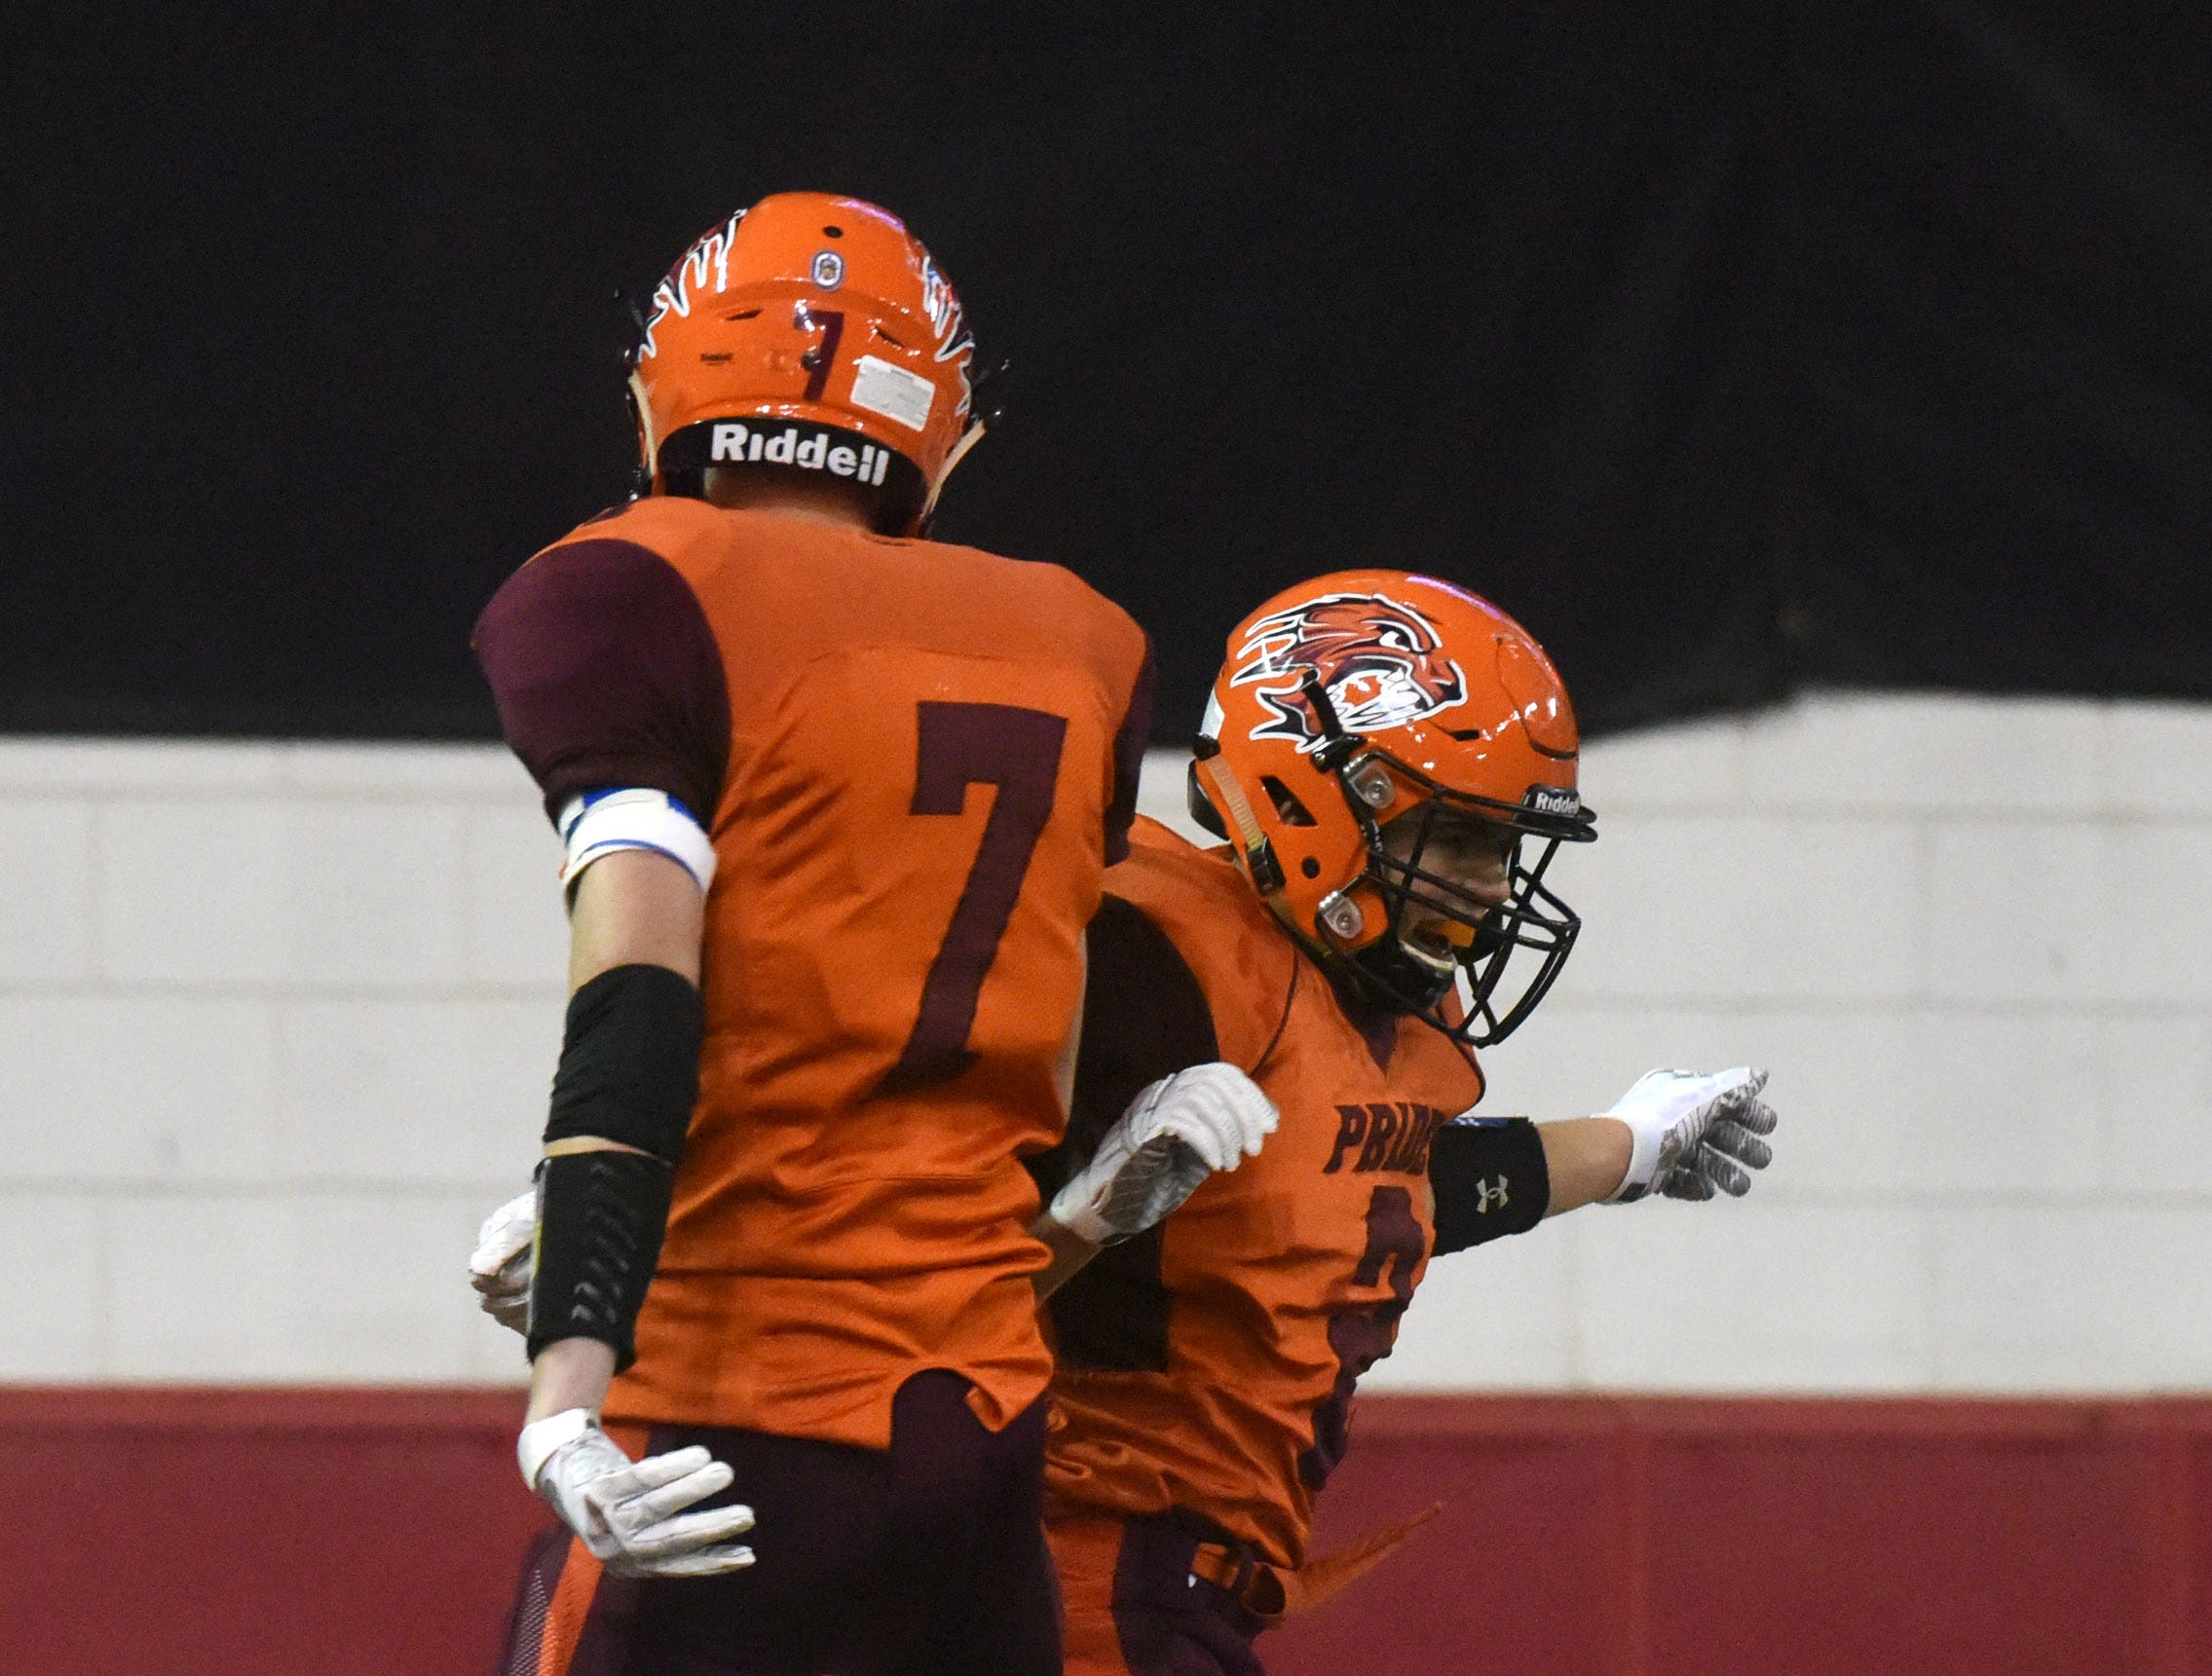 Canistota/Freeman's celebrates after scoring a touchdown during a game against Howard, Thursday, Nov. 8, 2018 at the DakotaDome in Vermillion, S.D.